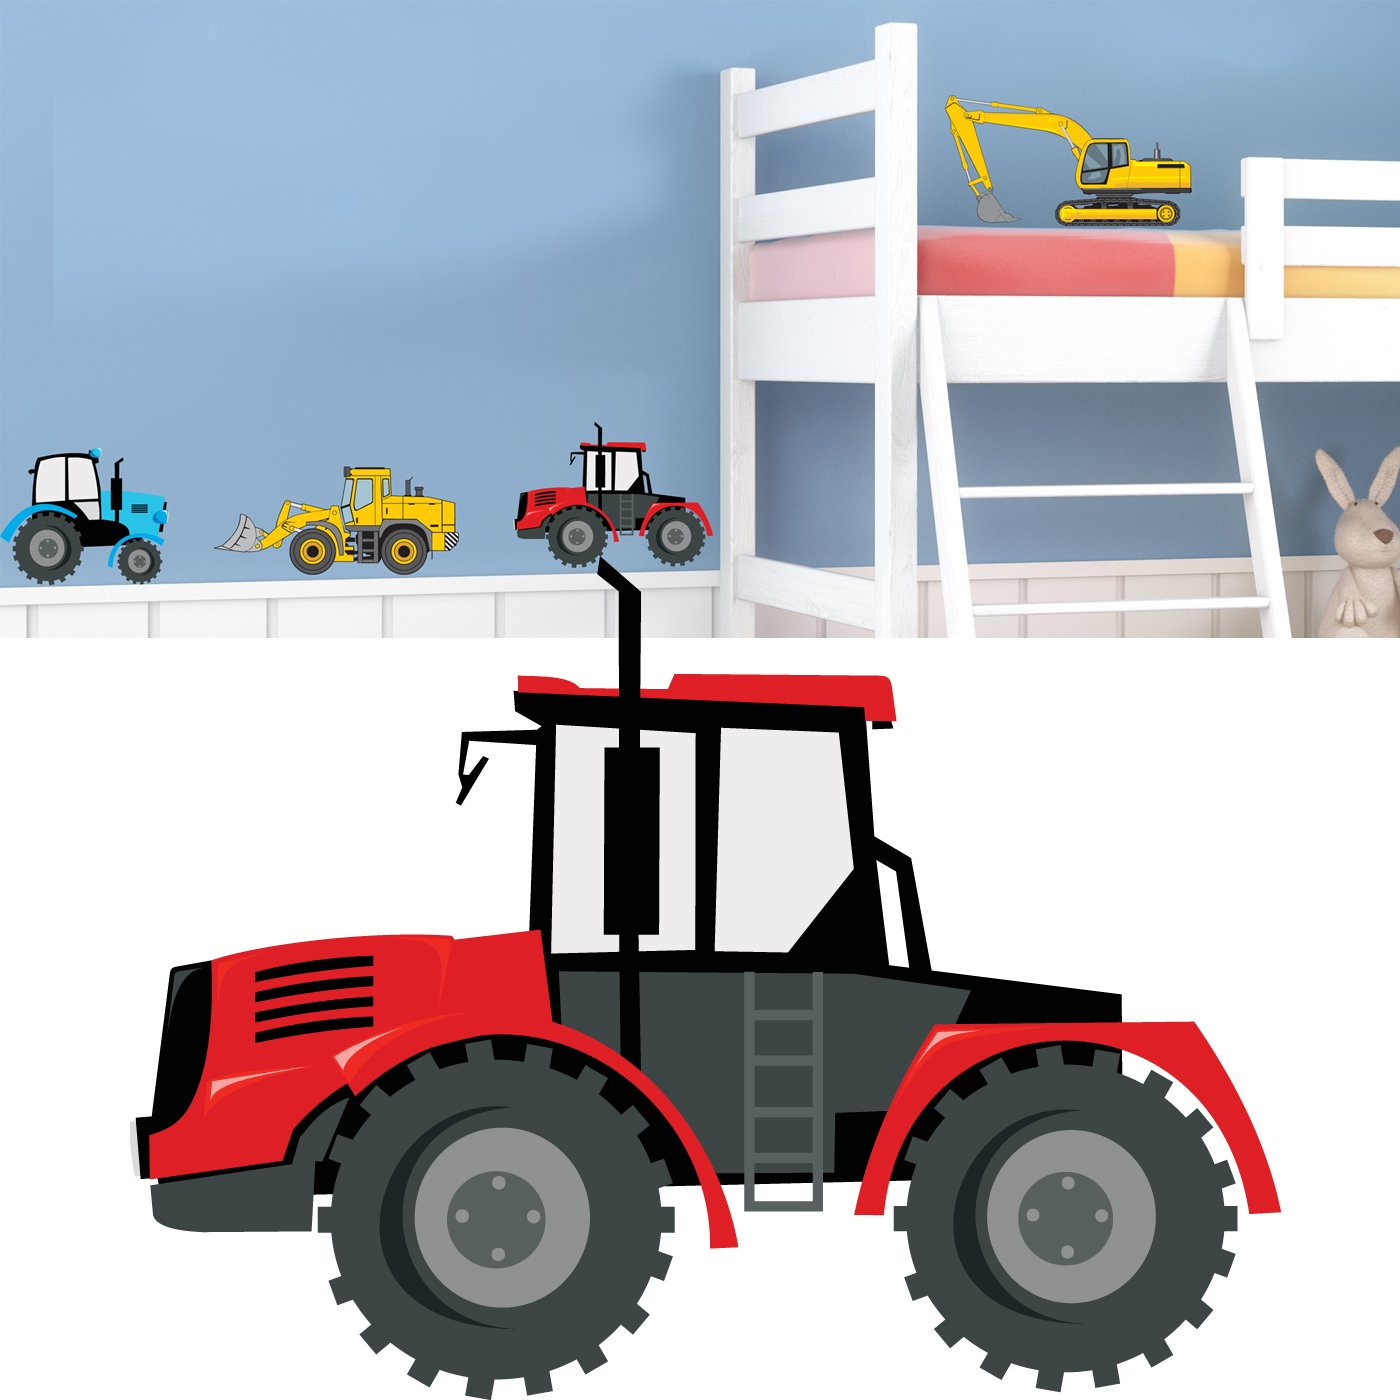 Tractor and digger kids bedroom nursery wall stickers childrens tractor and digger kids bedroom nursery wall stickers childrens boys baby custom graphic decal amazon kitchen home amipublicfo Gallery